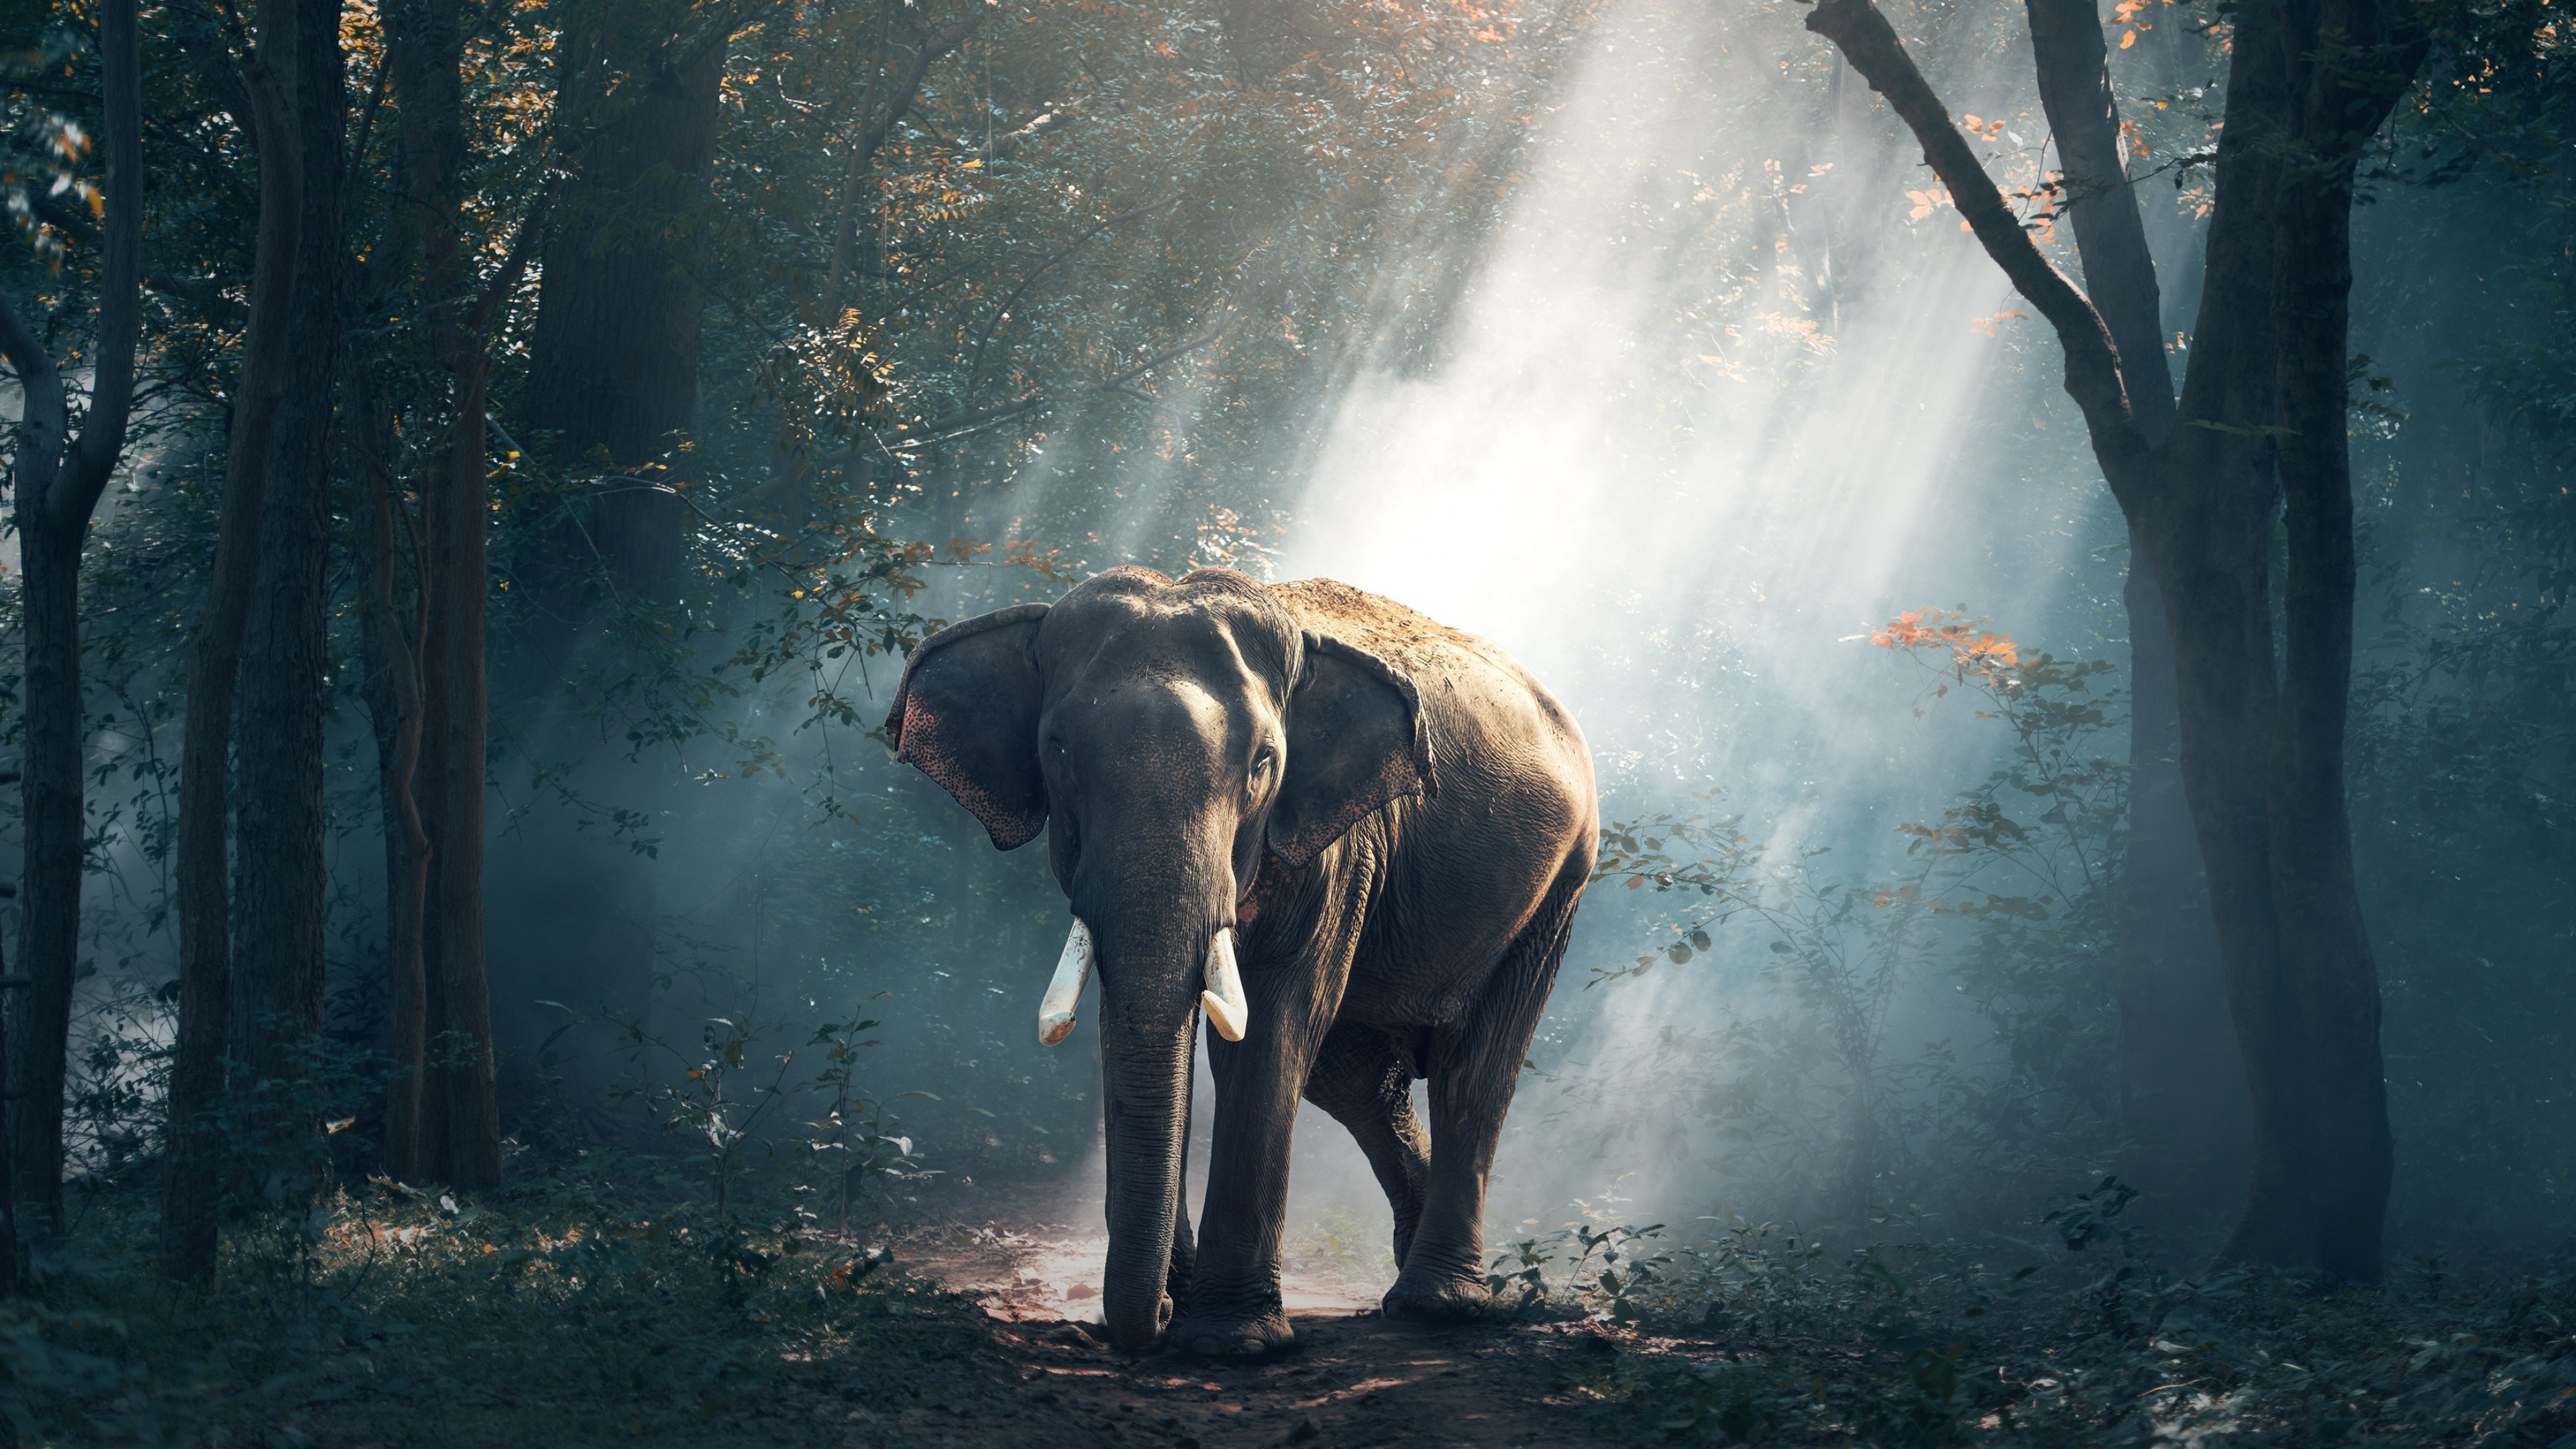 Tags: Elephant, Forest …